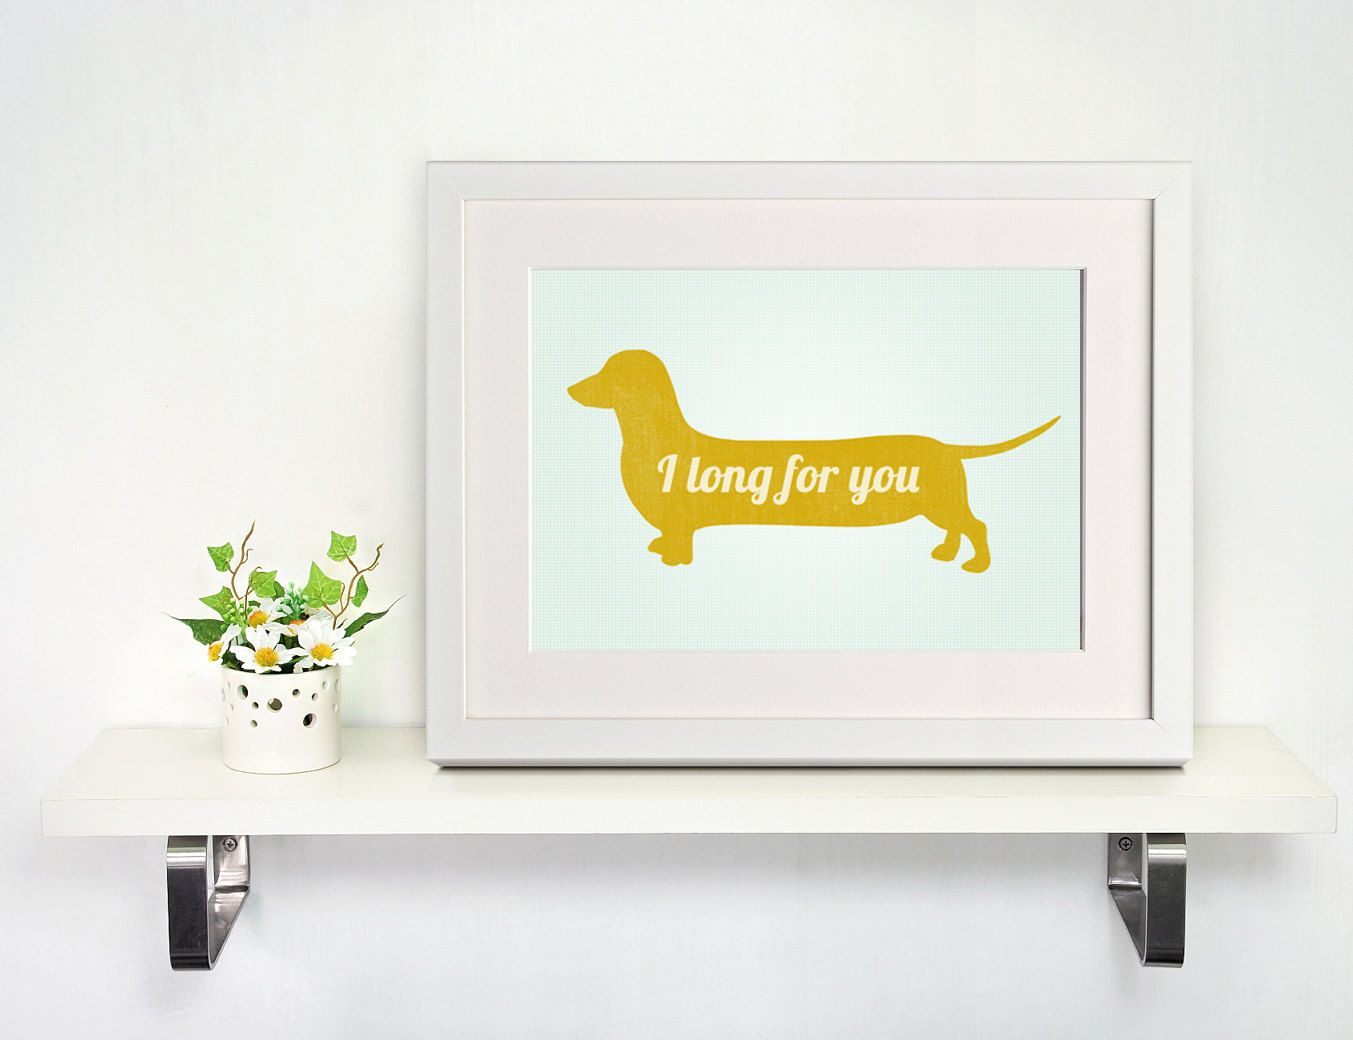 Dachshund Inspiration Quote Typography Print Wall Art Poster 11x17 16 00 Via Etsy Dachshund Quotes Typography Wall Art Dachshund Love